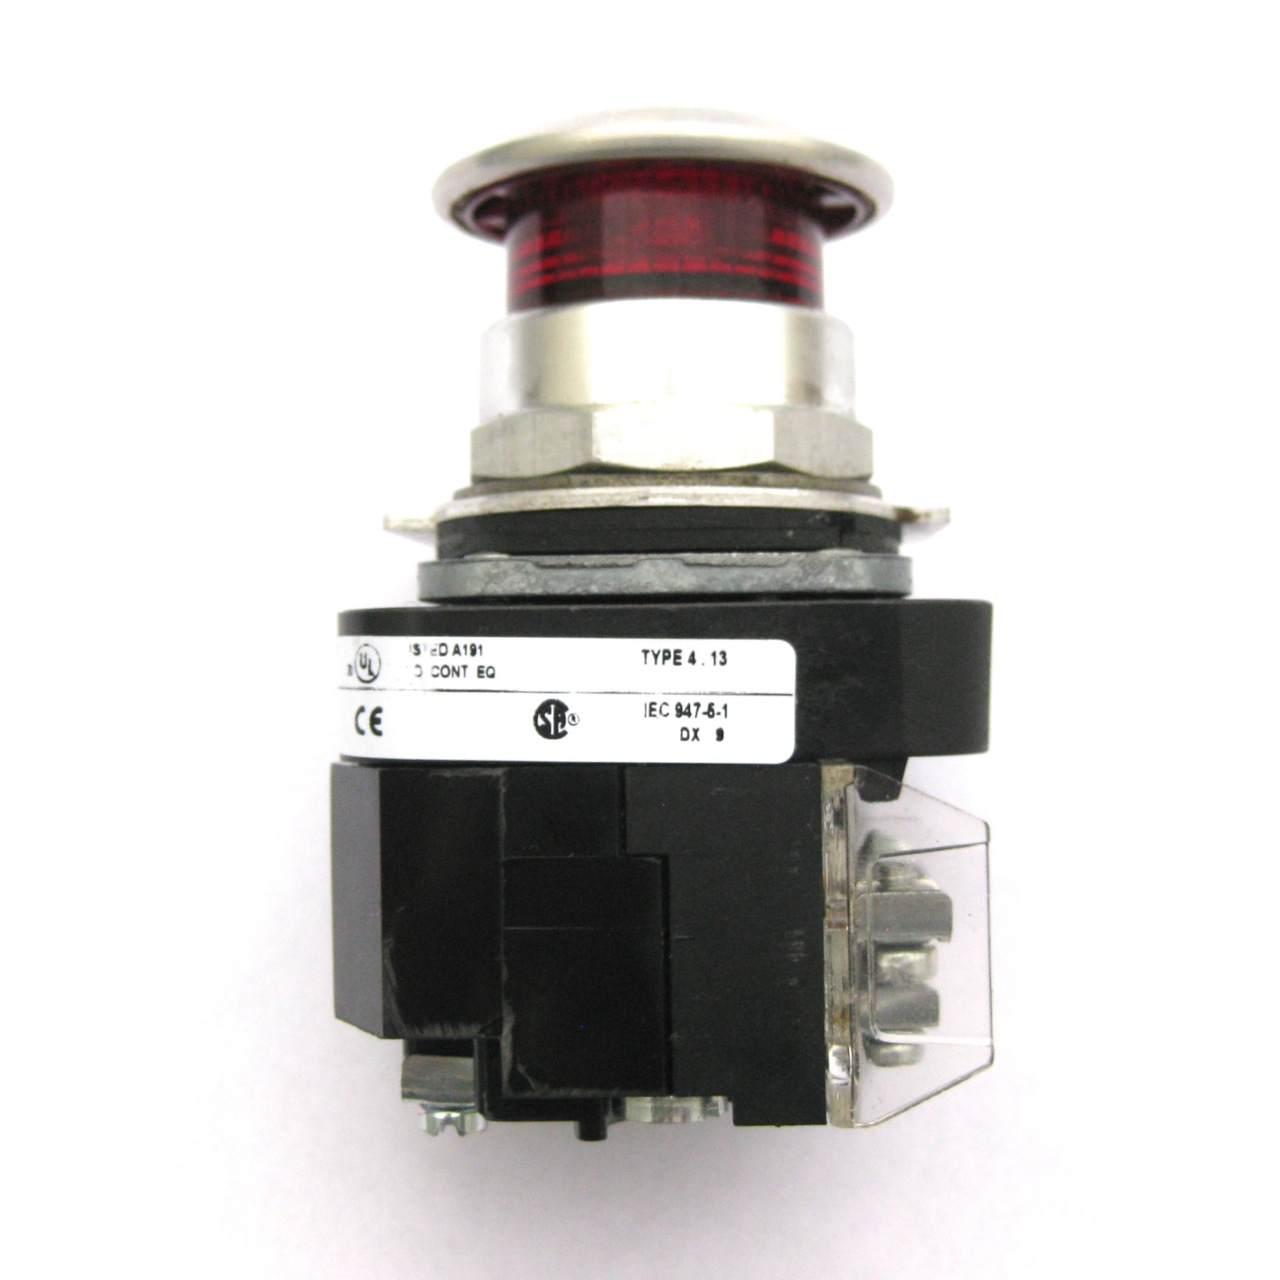 Loose Connection In Terminal Box besides Abb Vfd Control Wiring Diagram Free Download as well 800t Fxp16ra1 E Stop Button together with Spindle Motors further Air Cylinders. on baldor motor repair